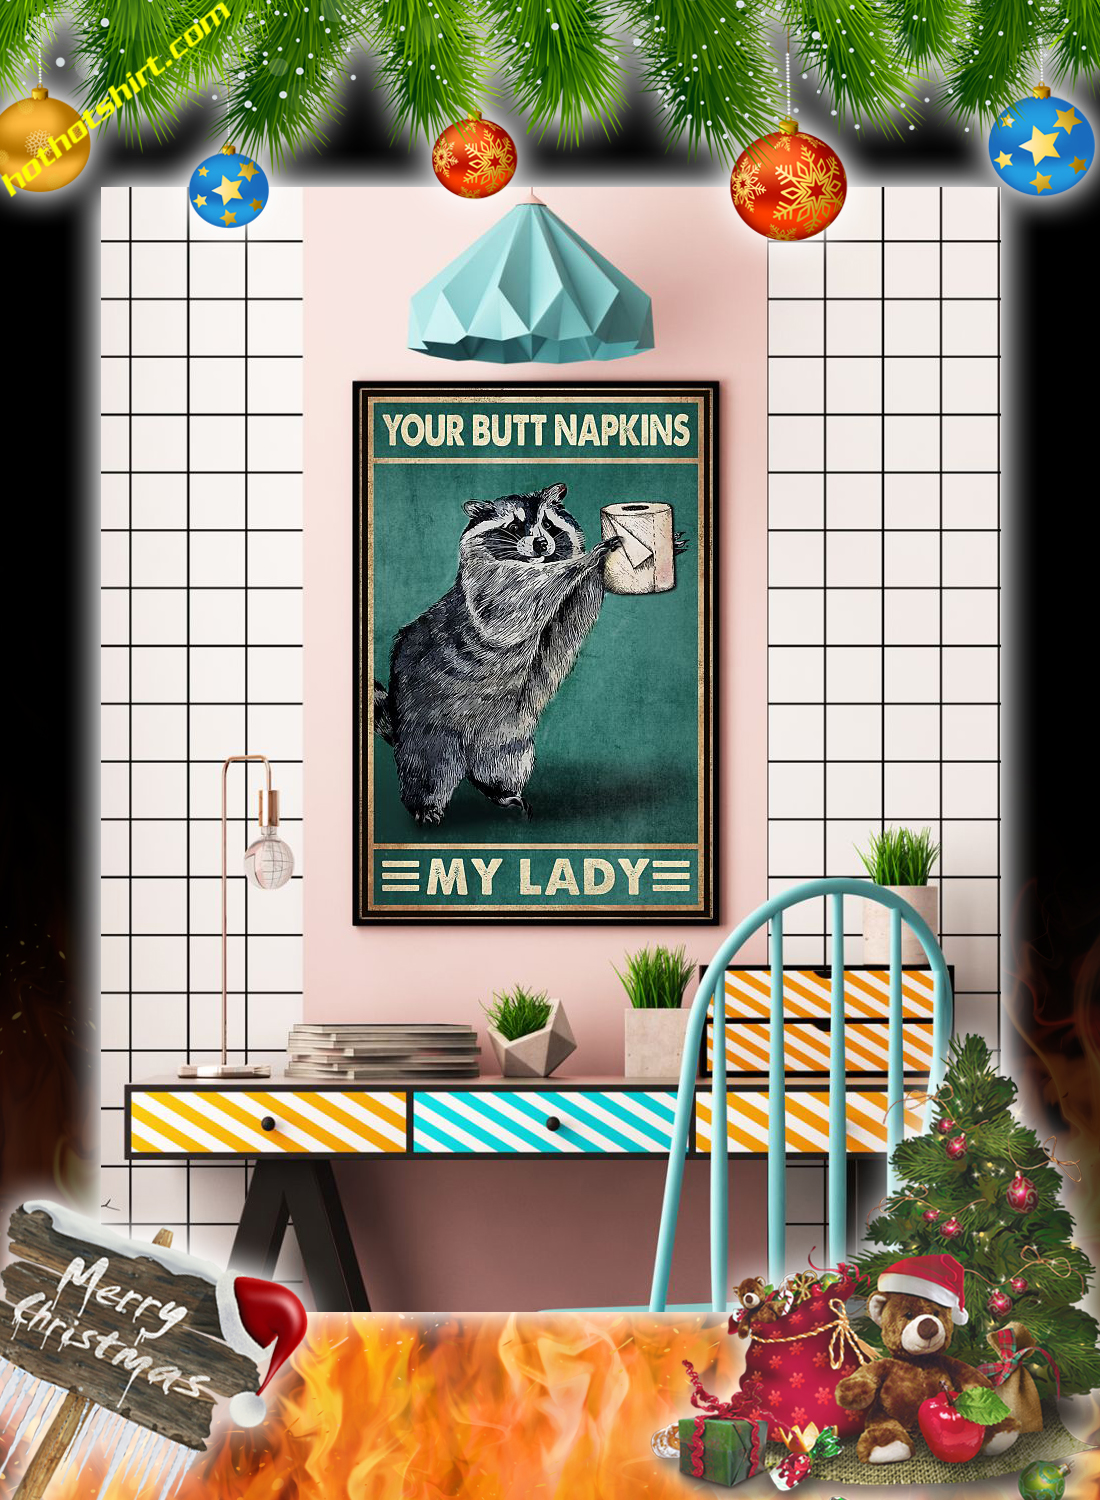 Raccoon Your butt napkins my lady poster 3